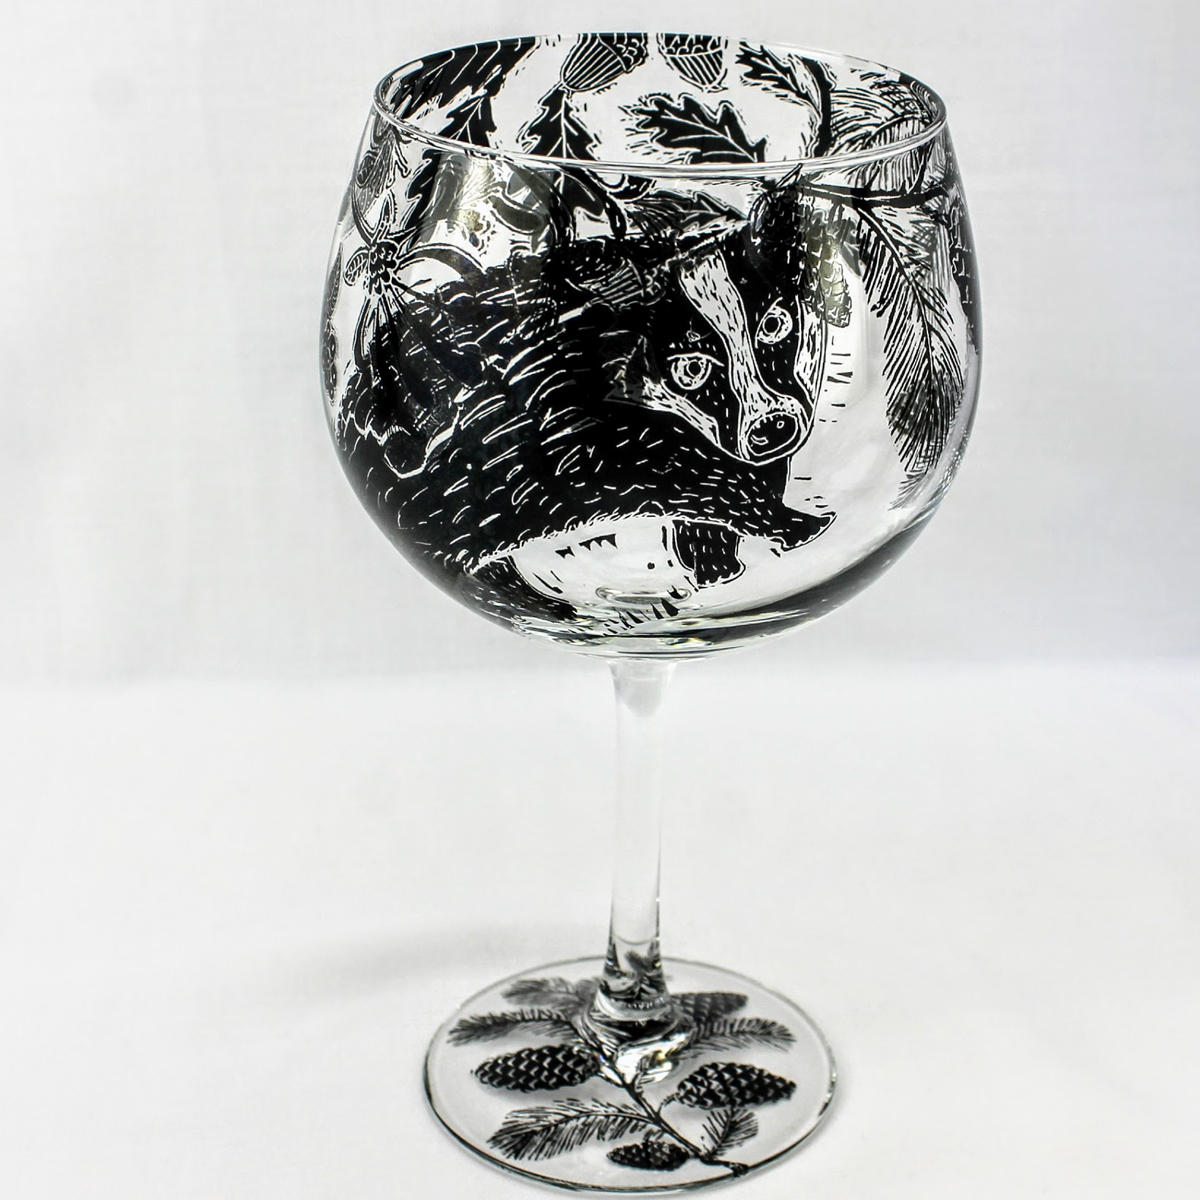 G & T stem cocktail glass with woodland scene and a badger